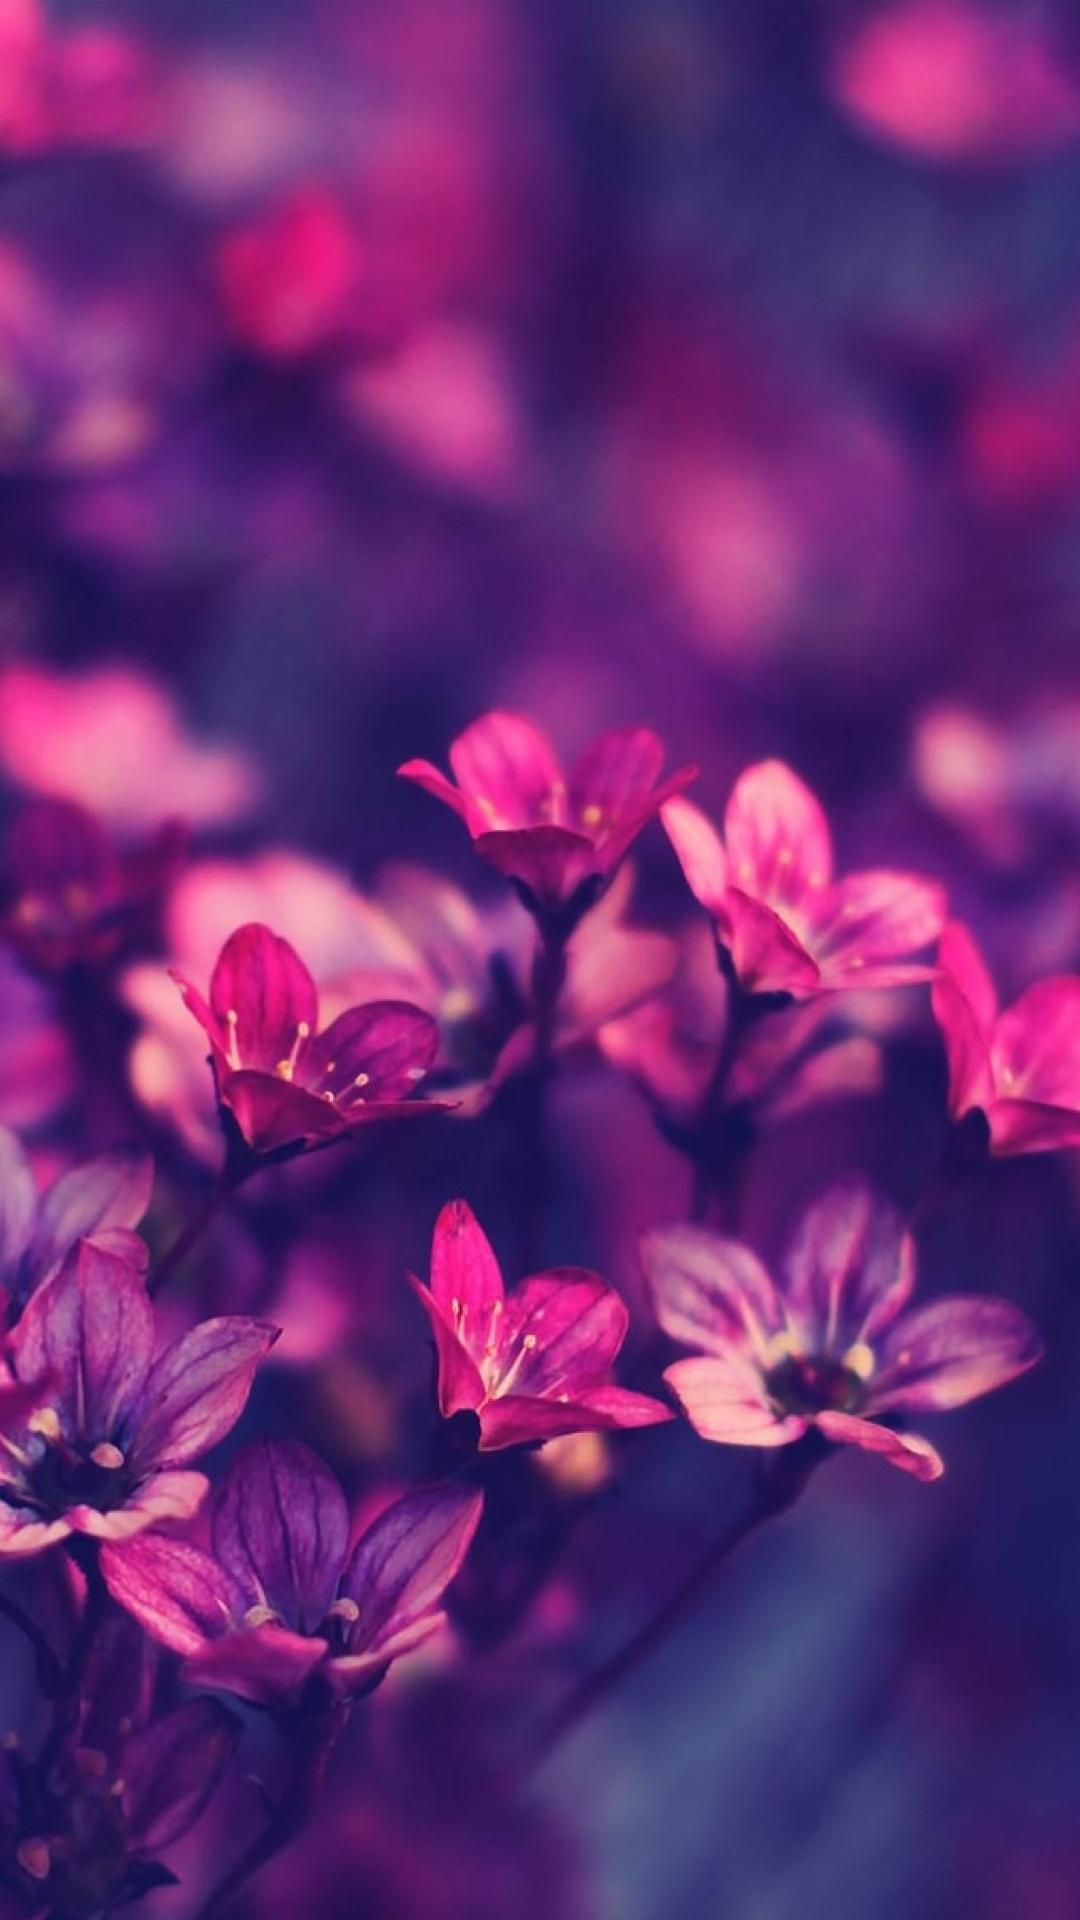 Samsung Galaxy J7 Wallpaper Download Full Size Flowers Wallpaper Hd Download 1080x1920 Download Hd Wallpaper Wallpapertip